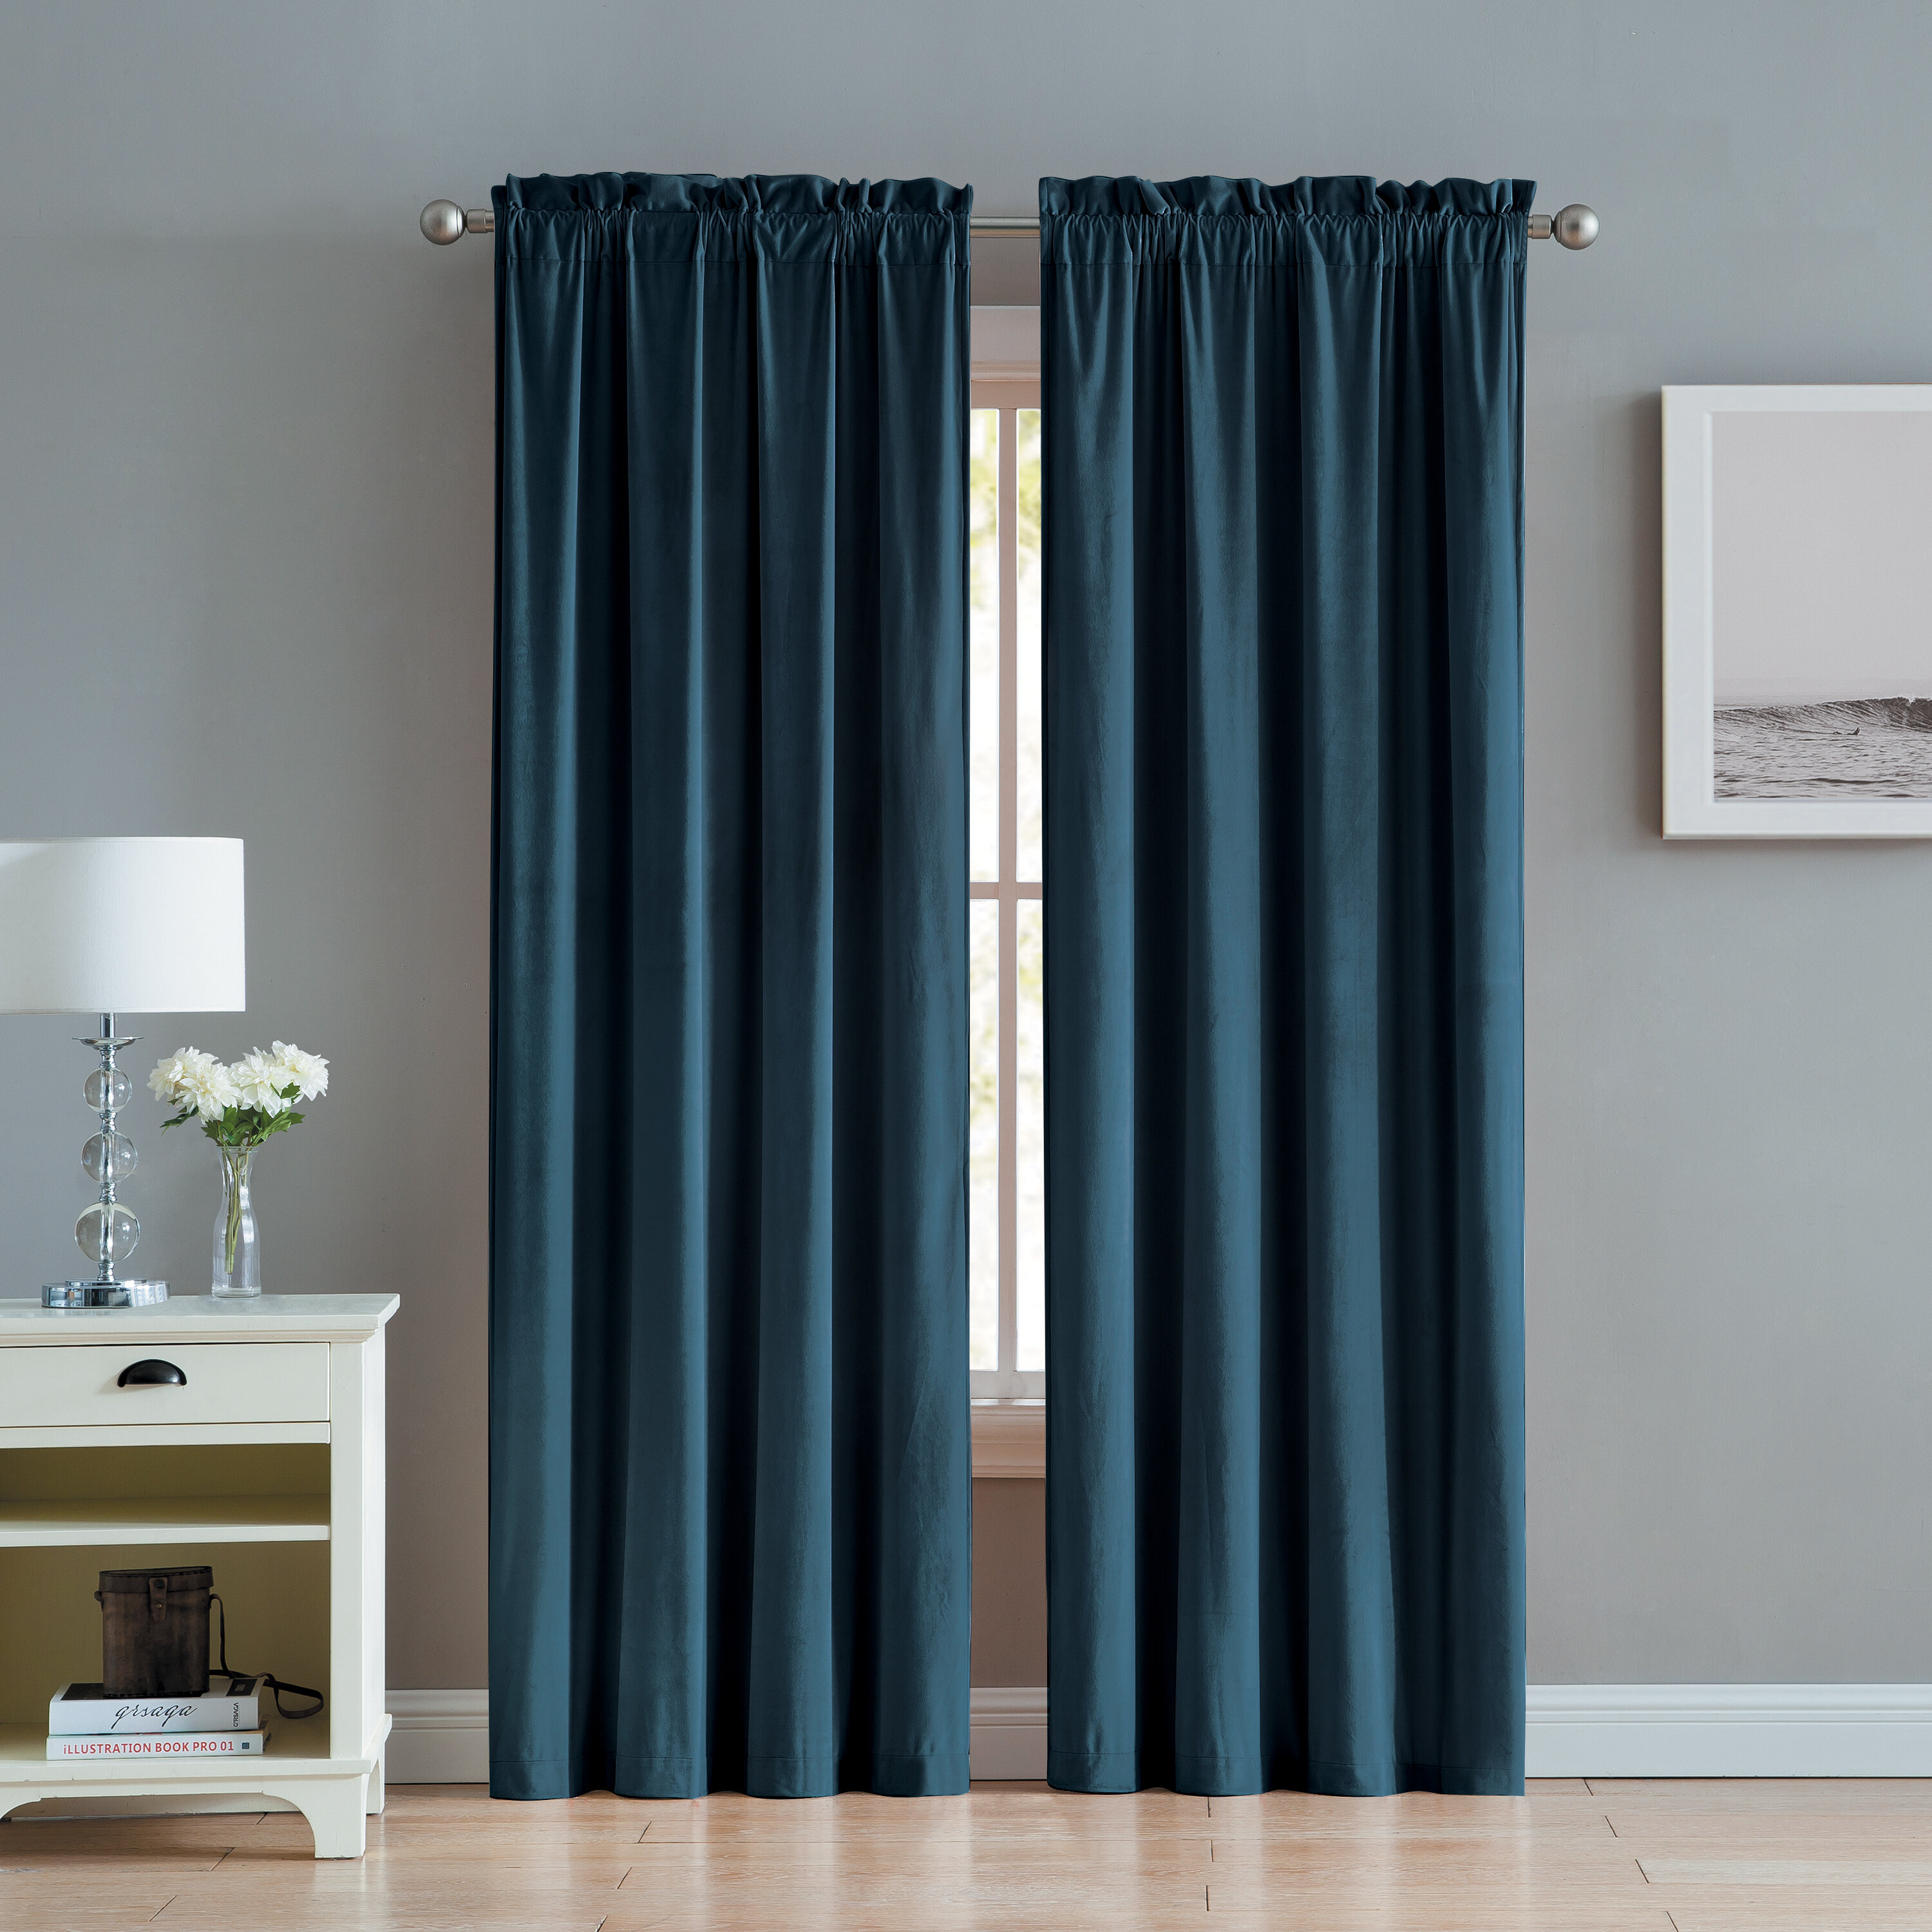 Three Posts Judsonia Velvet Solid Room Darkening Rod Pocket Throughout Velvet Solid Room Darkening Window Curtain Panel Sets (View 8 of 30)